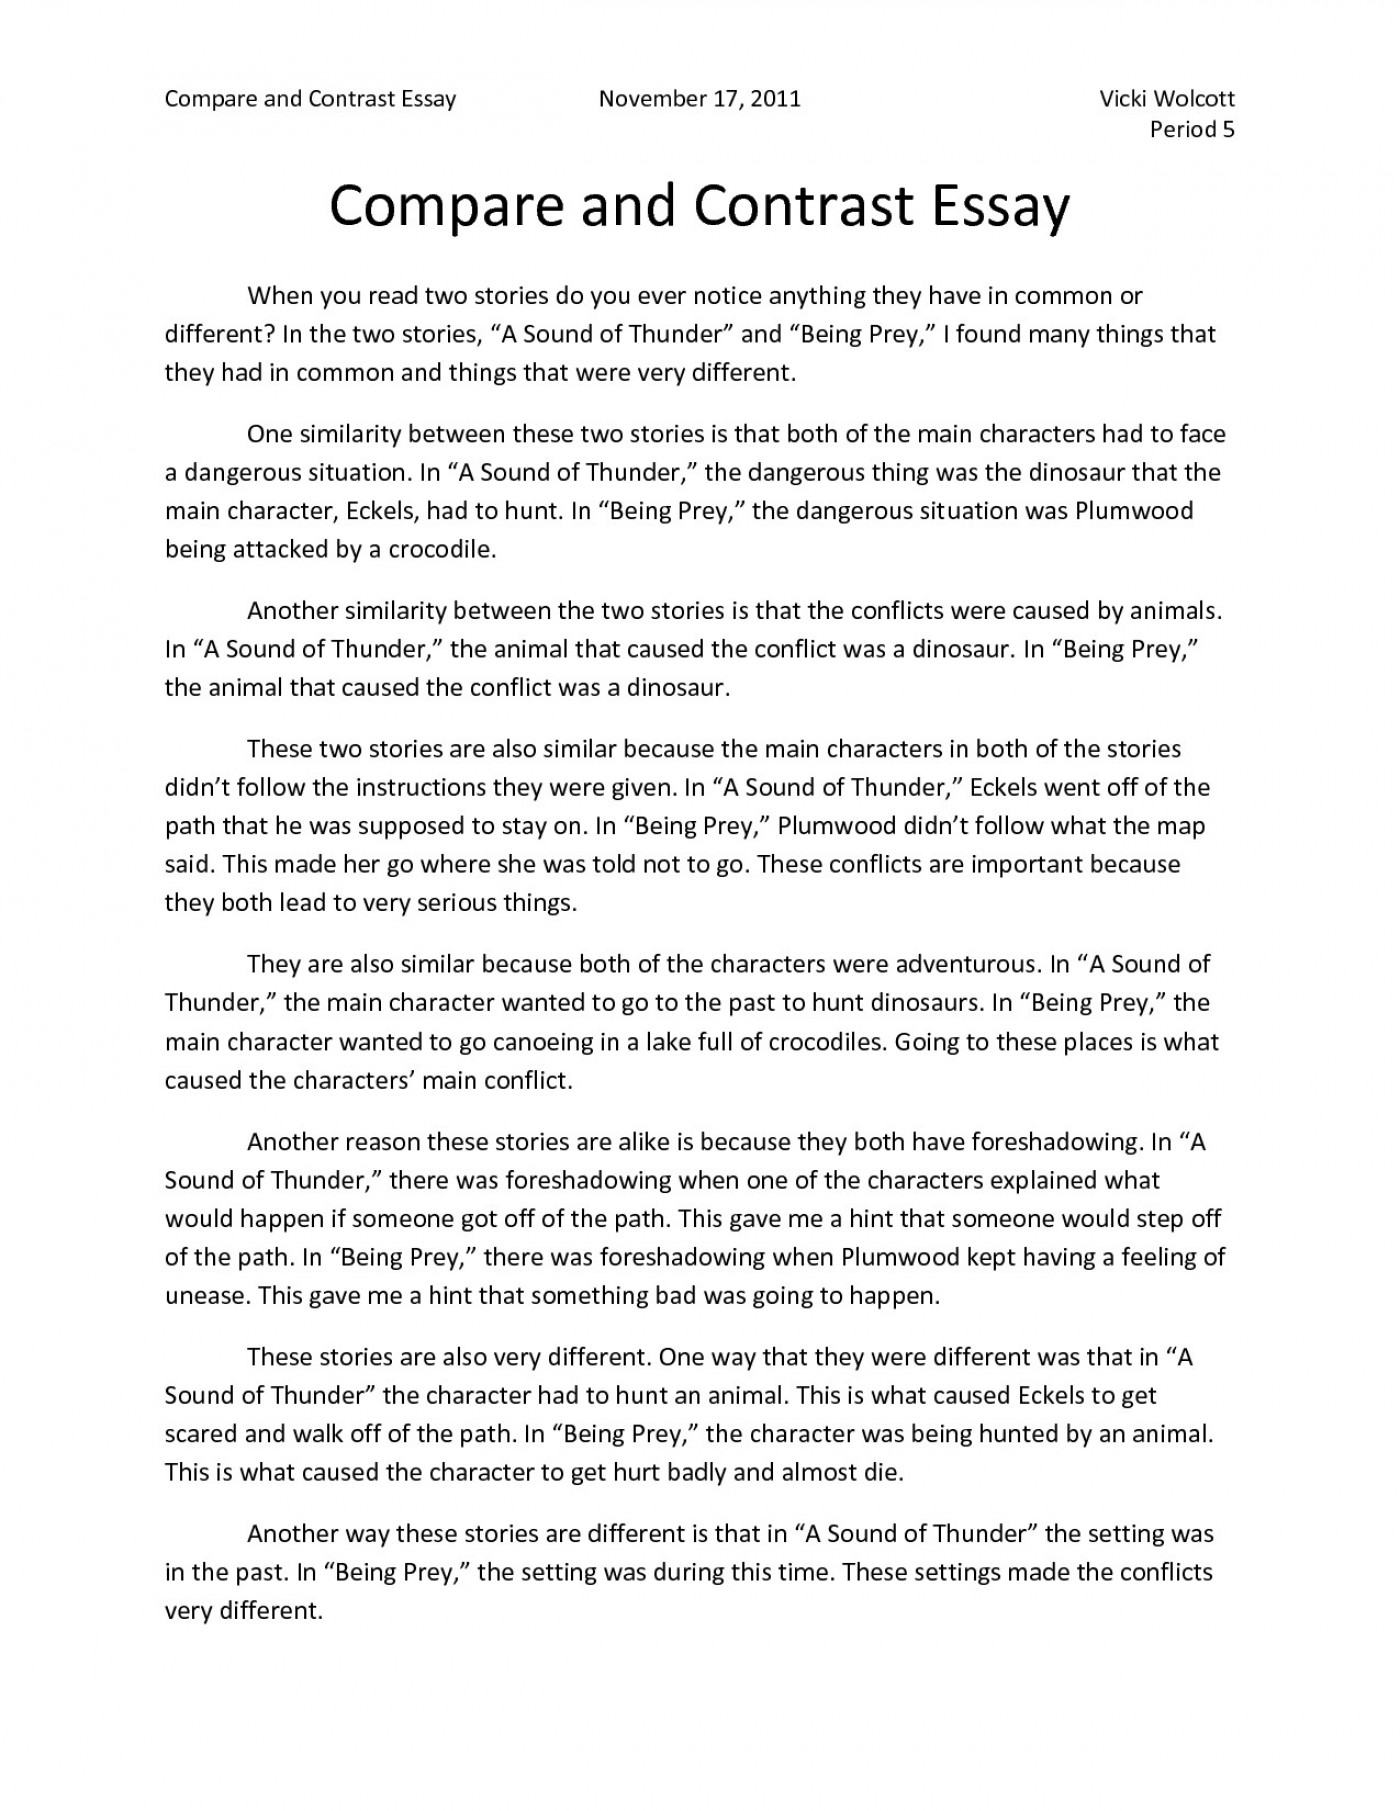 006 Comparing And Contrasting Essay Example Satire Examples Of Comparison Contrast Essays Com How To Write Outstanding A Compare Format Block Conclusion Paragraph For 1400